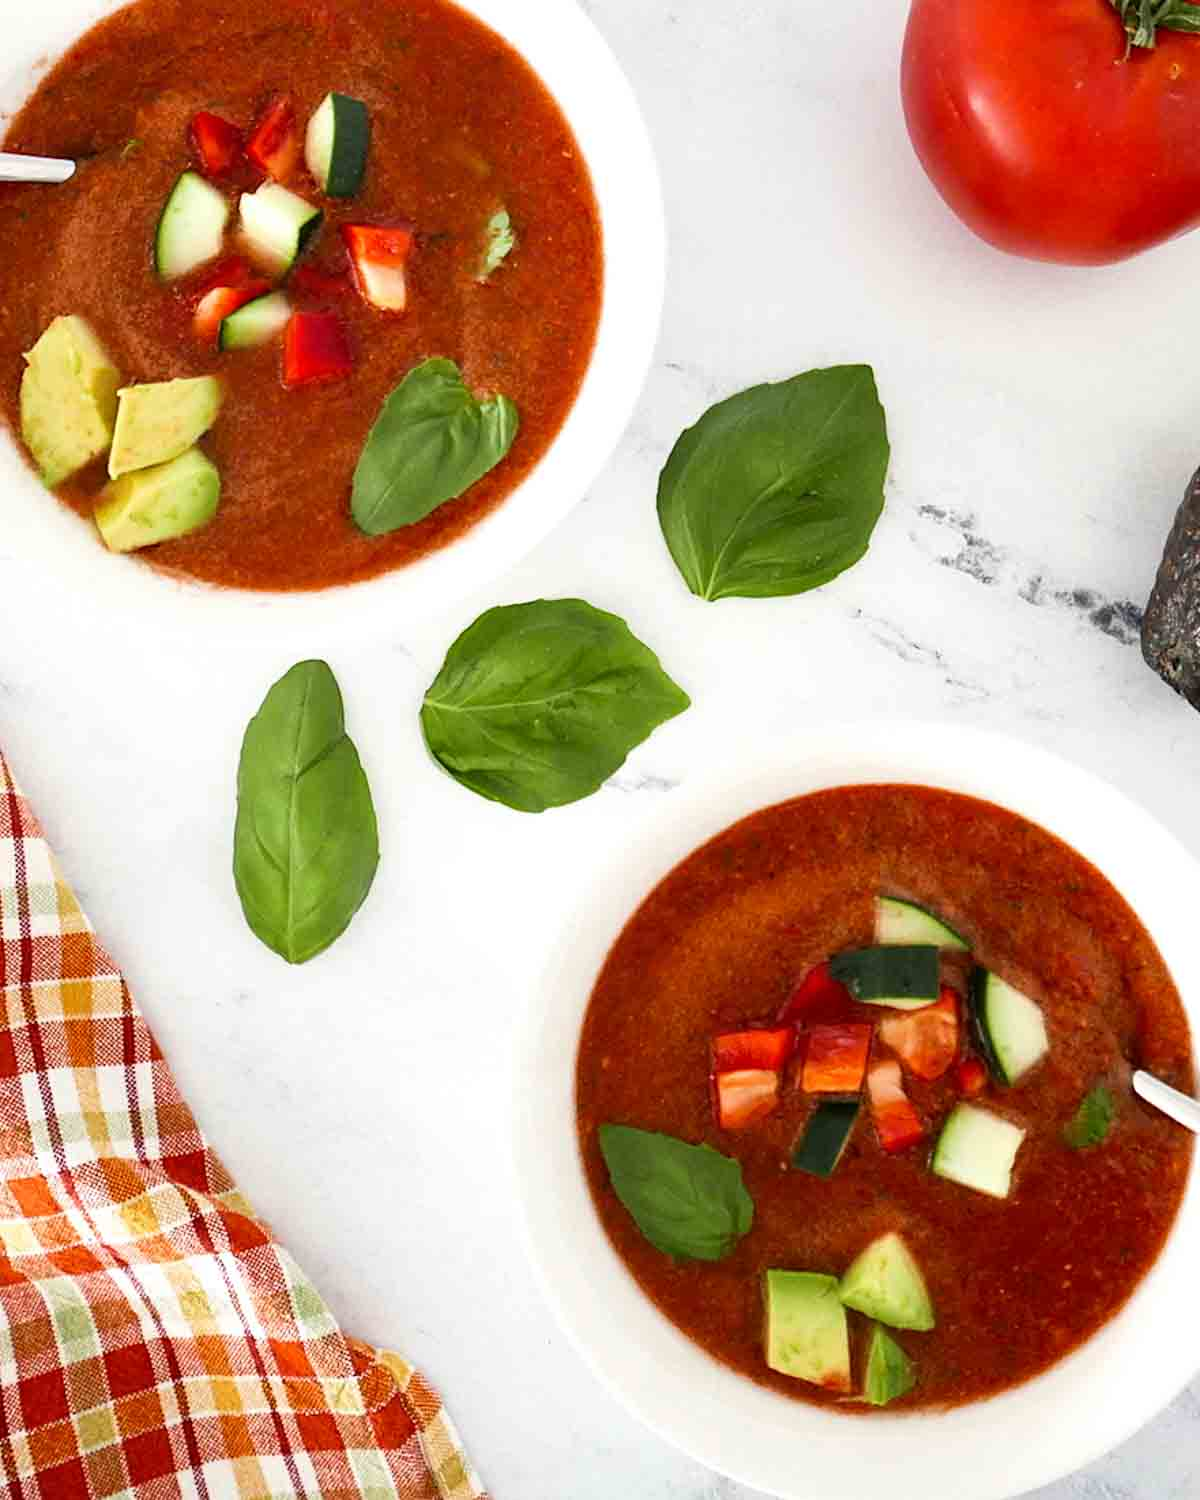 2 bowls of gazpacho with spoons topped with cucumber and tomato cubes. There are some basil leaves in the background.